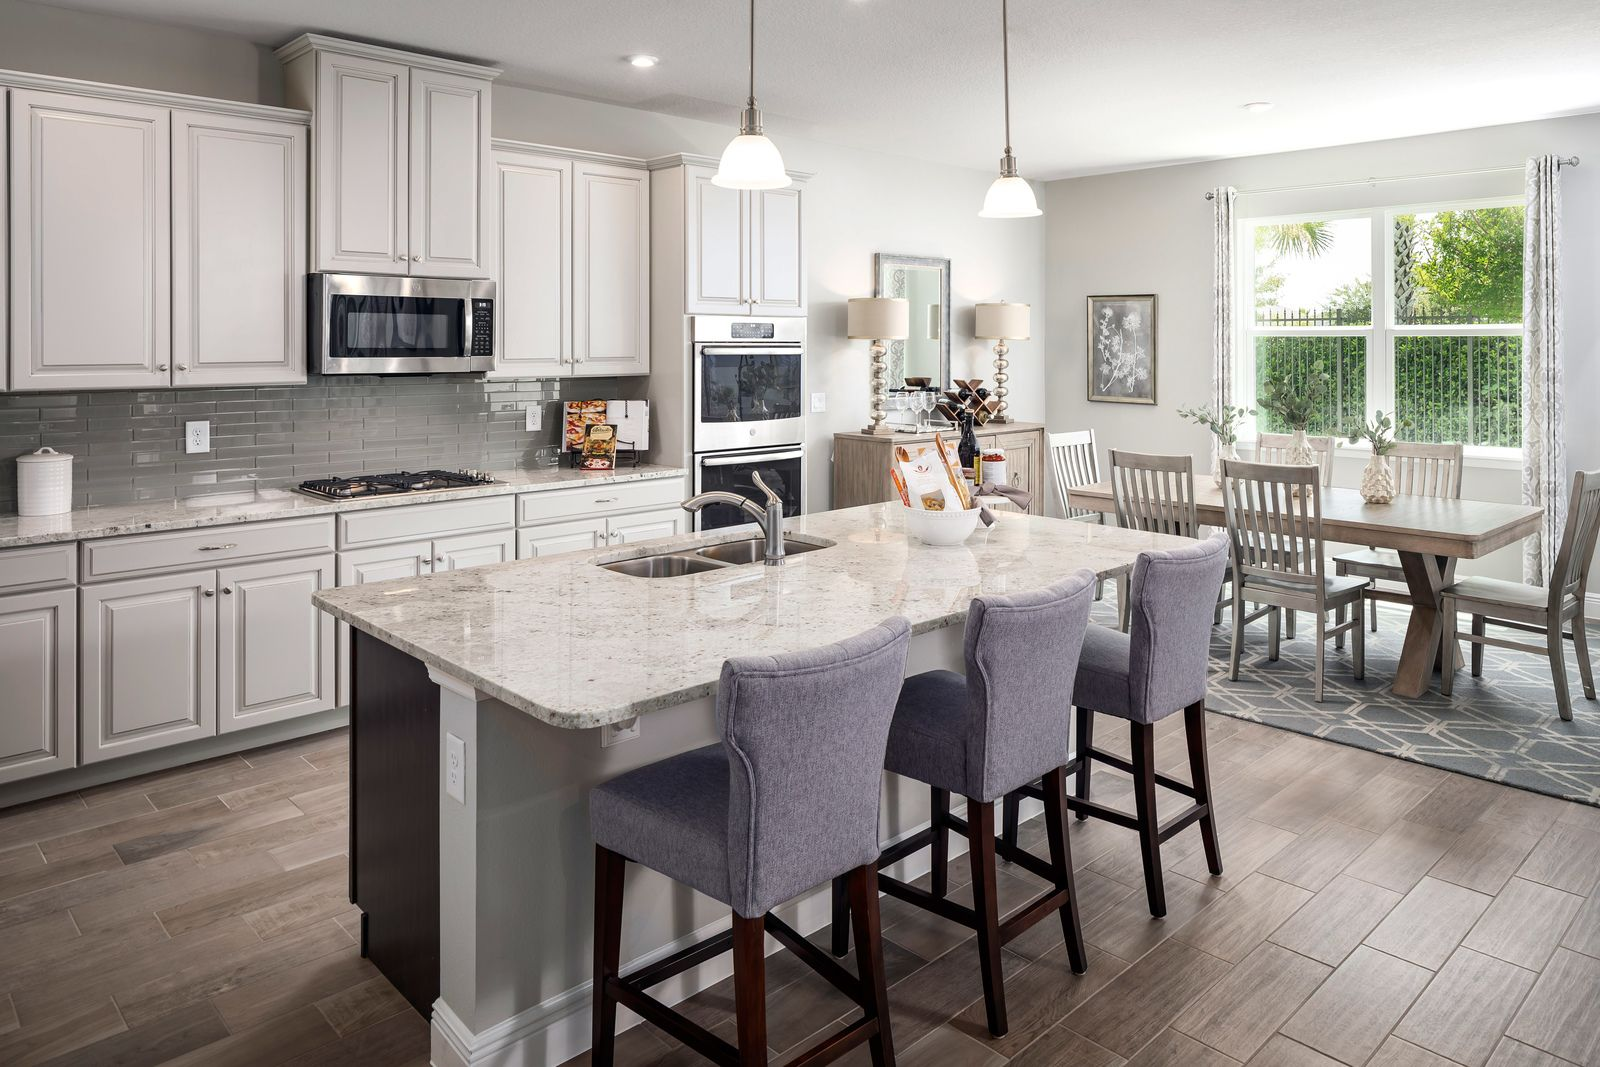 'Huntington Place' by Ryan Homes-SFN in Indian River County